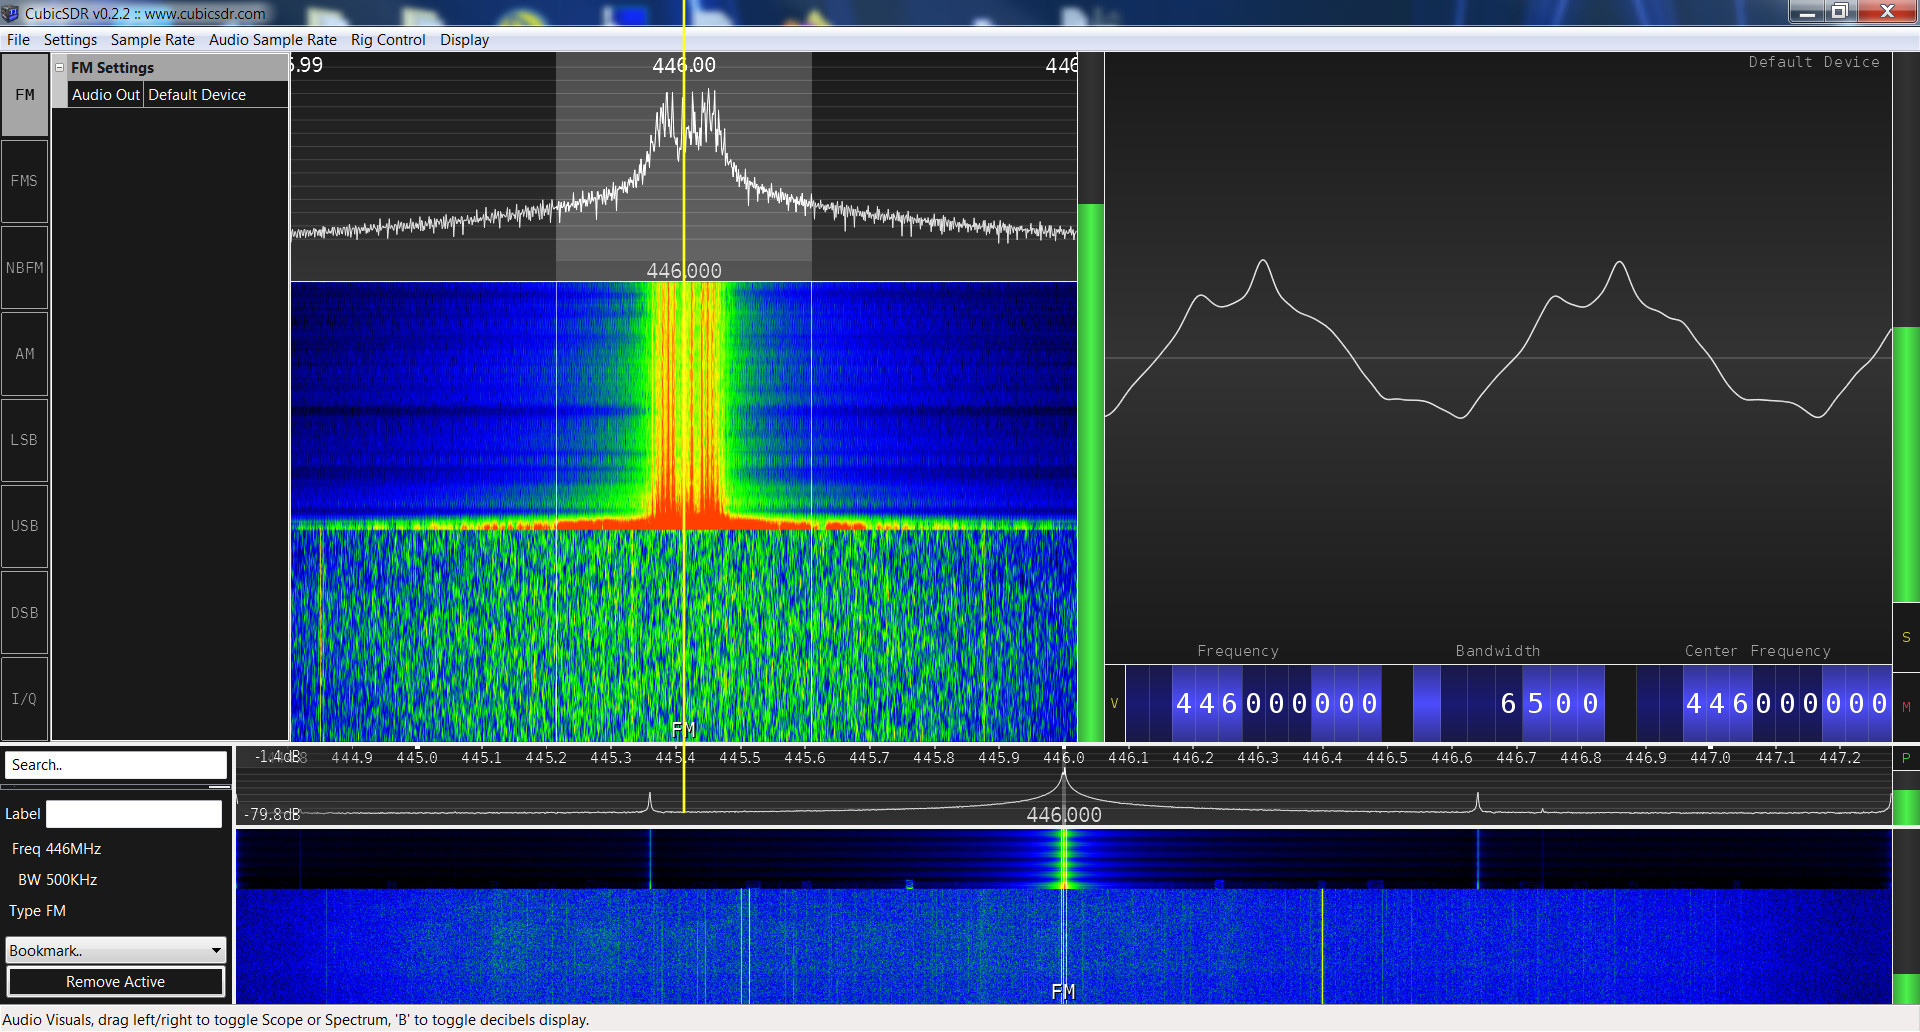 Radioddity GD-77 SRD spectrum analysis